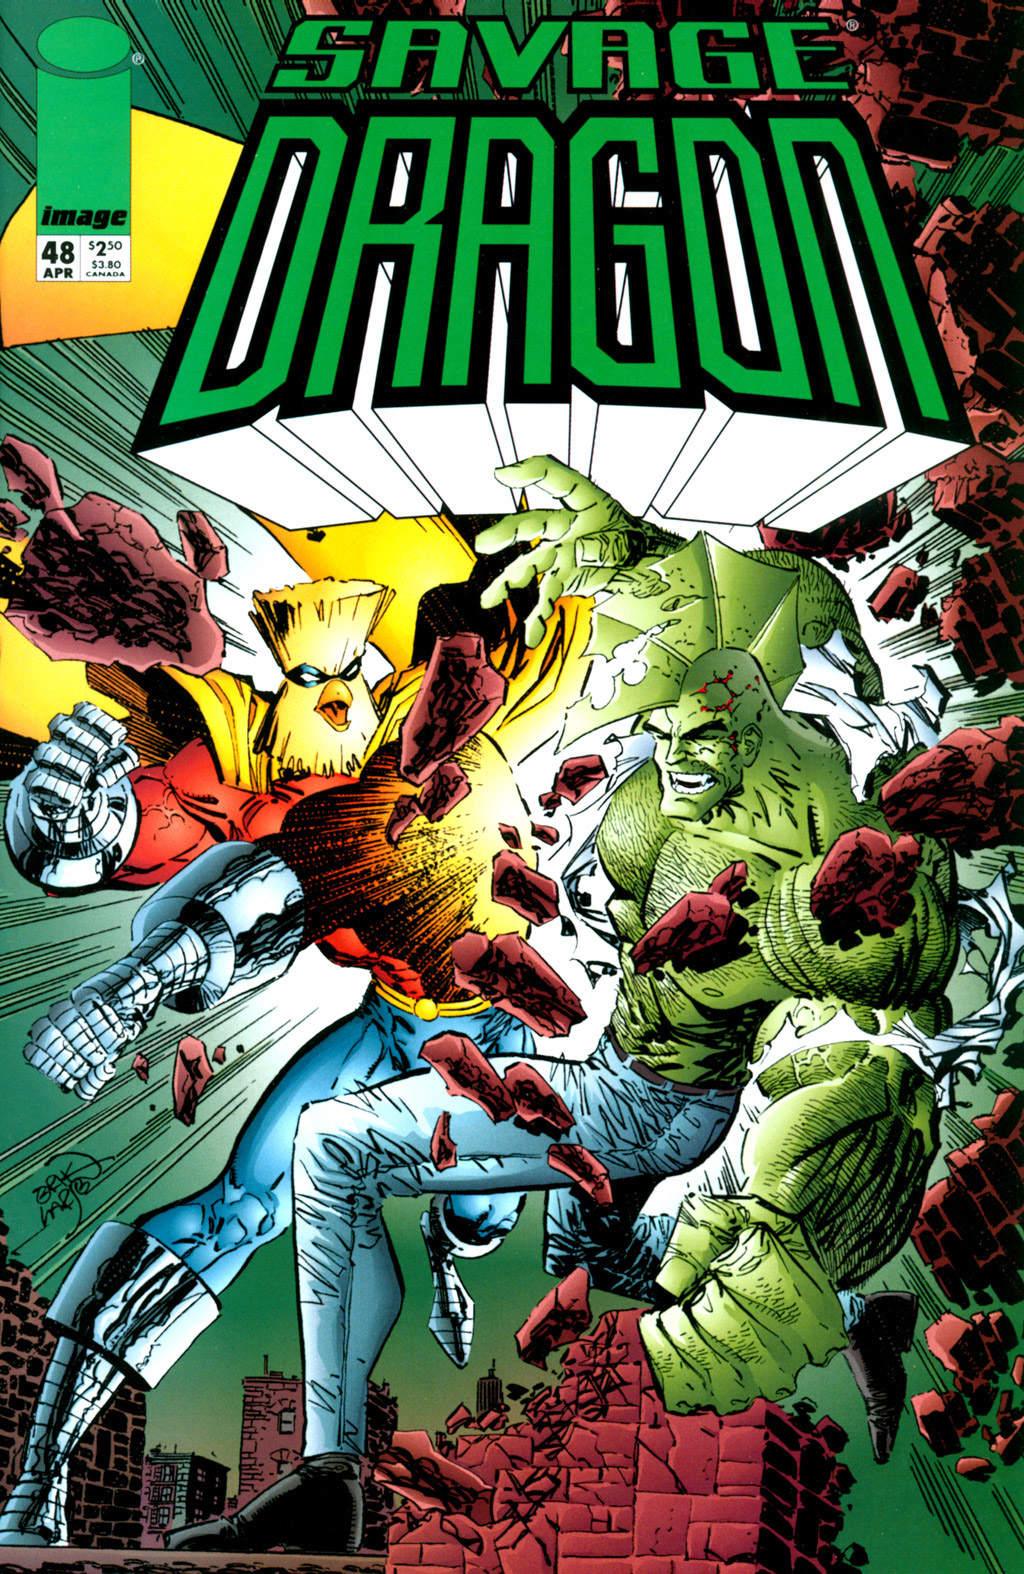 Cover Savage Dragon Vol.2 #48